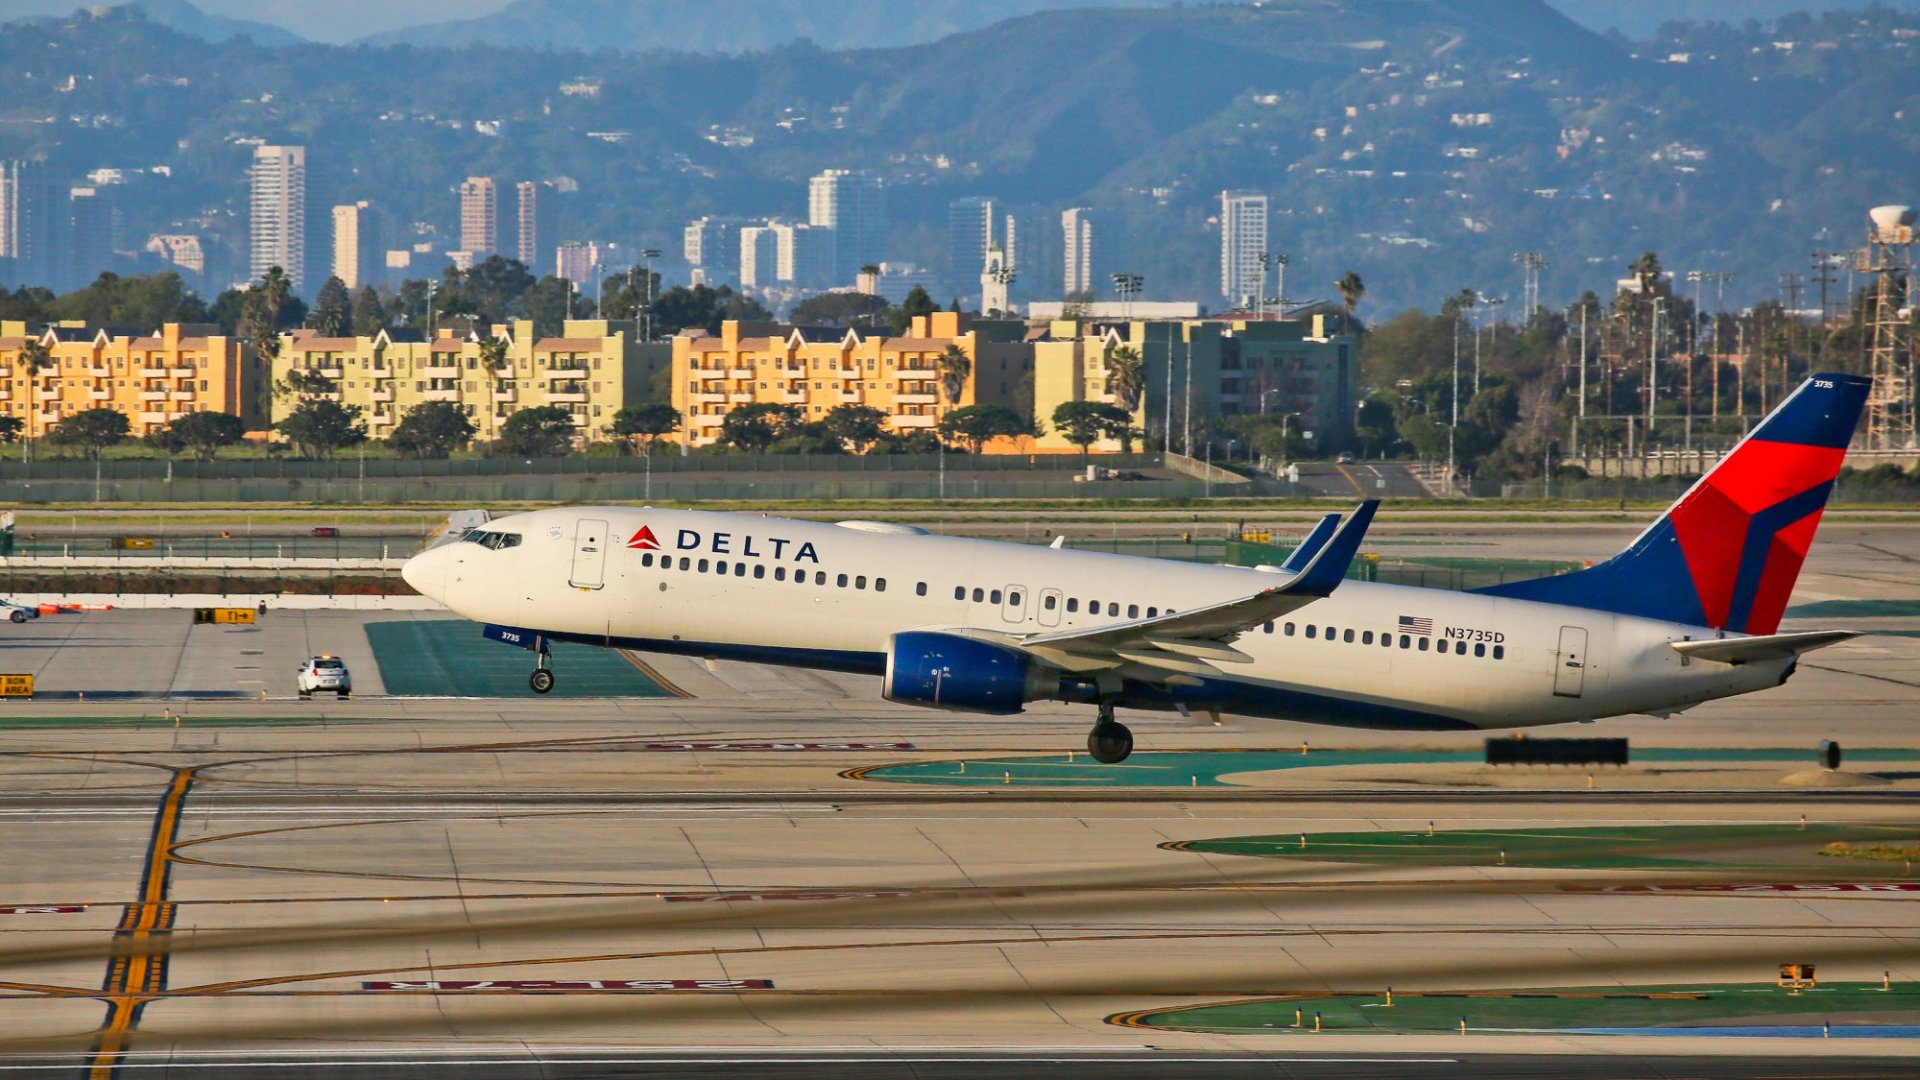 Delta Just Paid $4,000 to Bump a Passenger. Here's the Ridiculous Reason Why